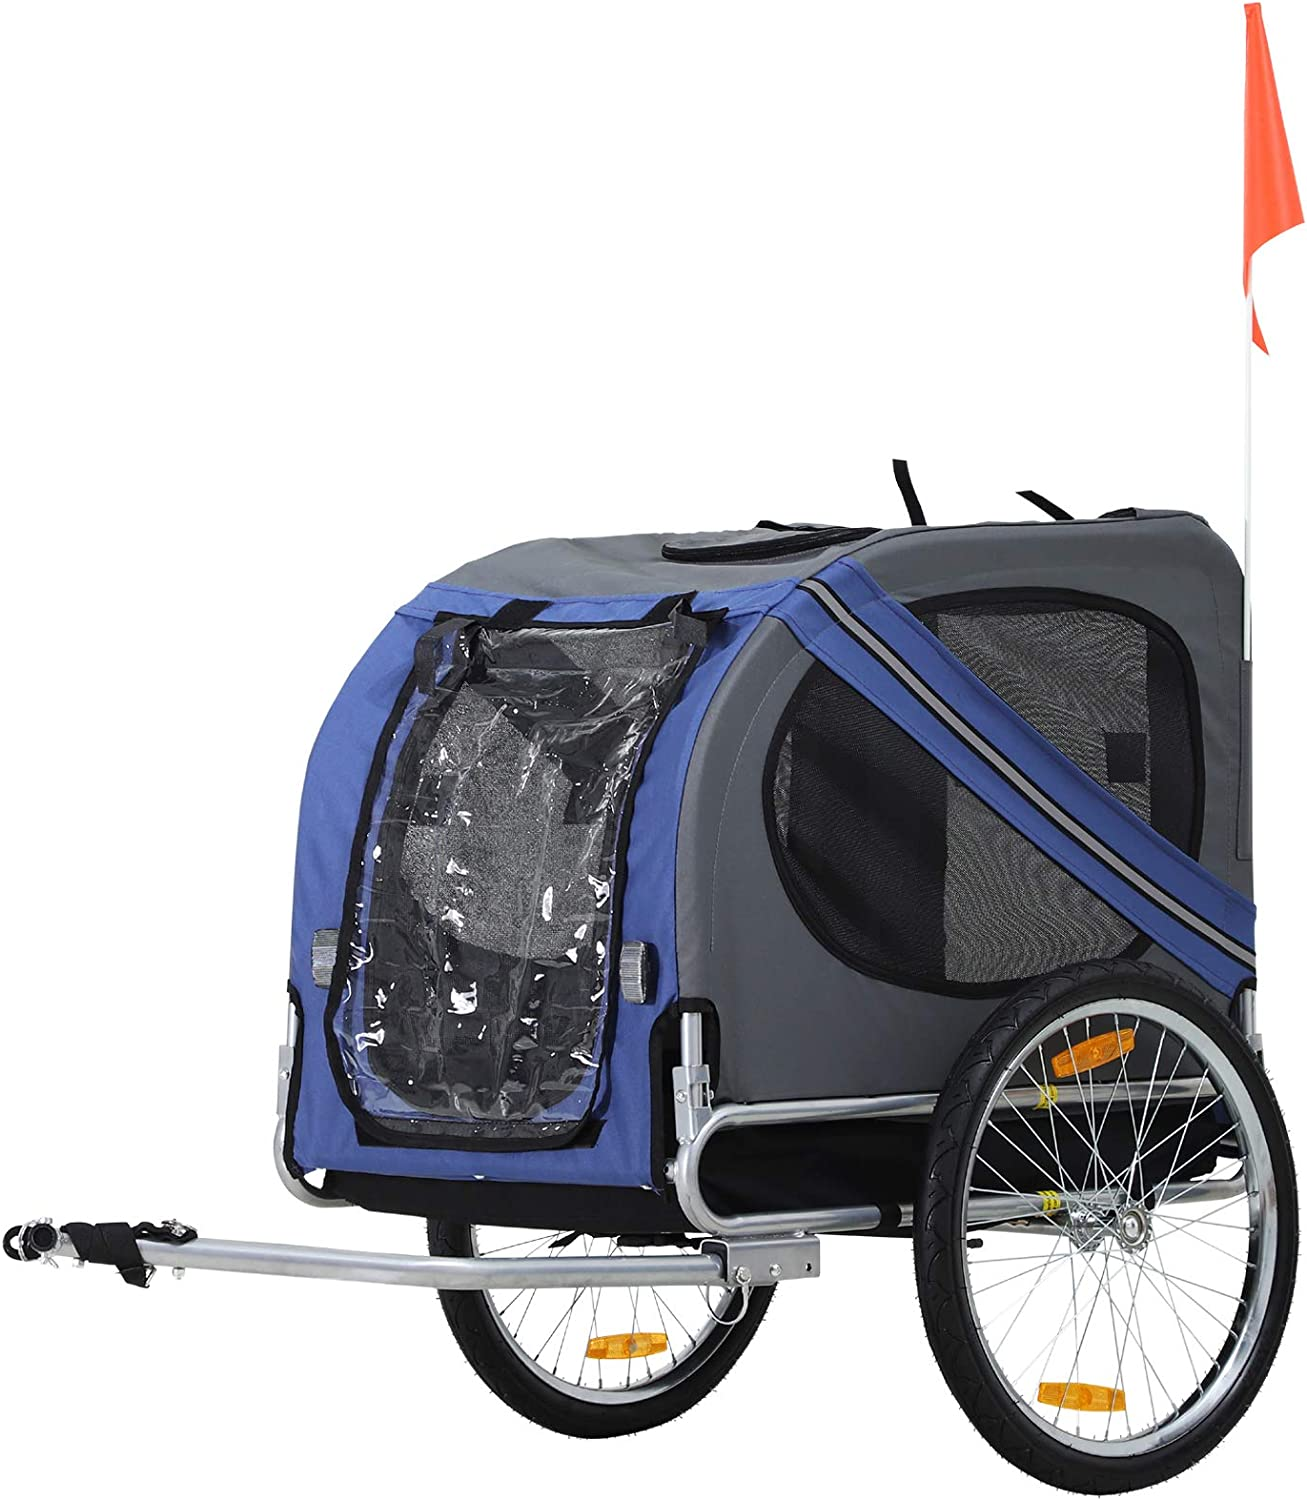 Aosom Bike Trailer Cargo Cart for Dogs and Pets with 3 Entrances Large Wheels for Off-Road & Mesh Screen